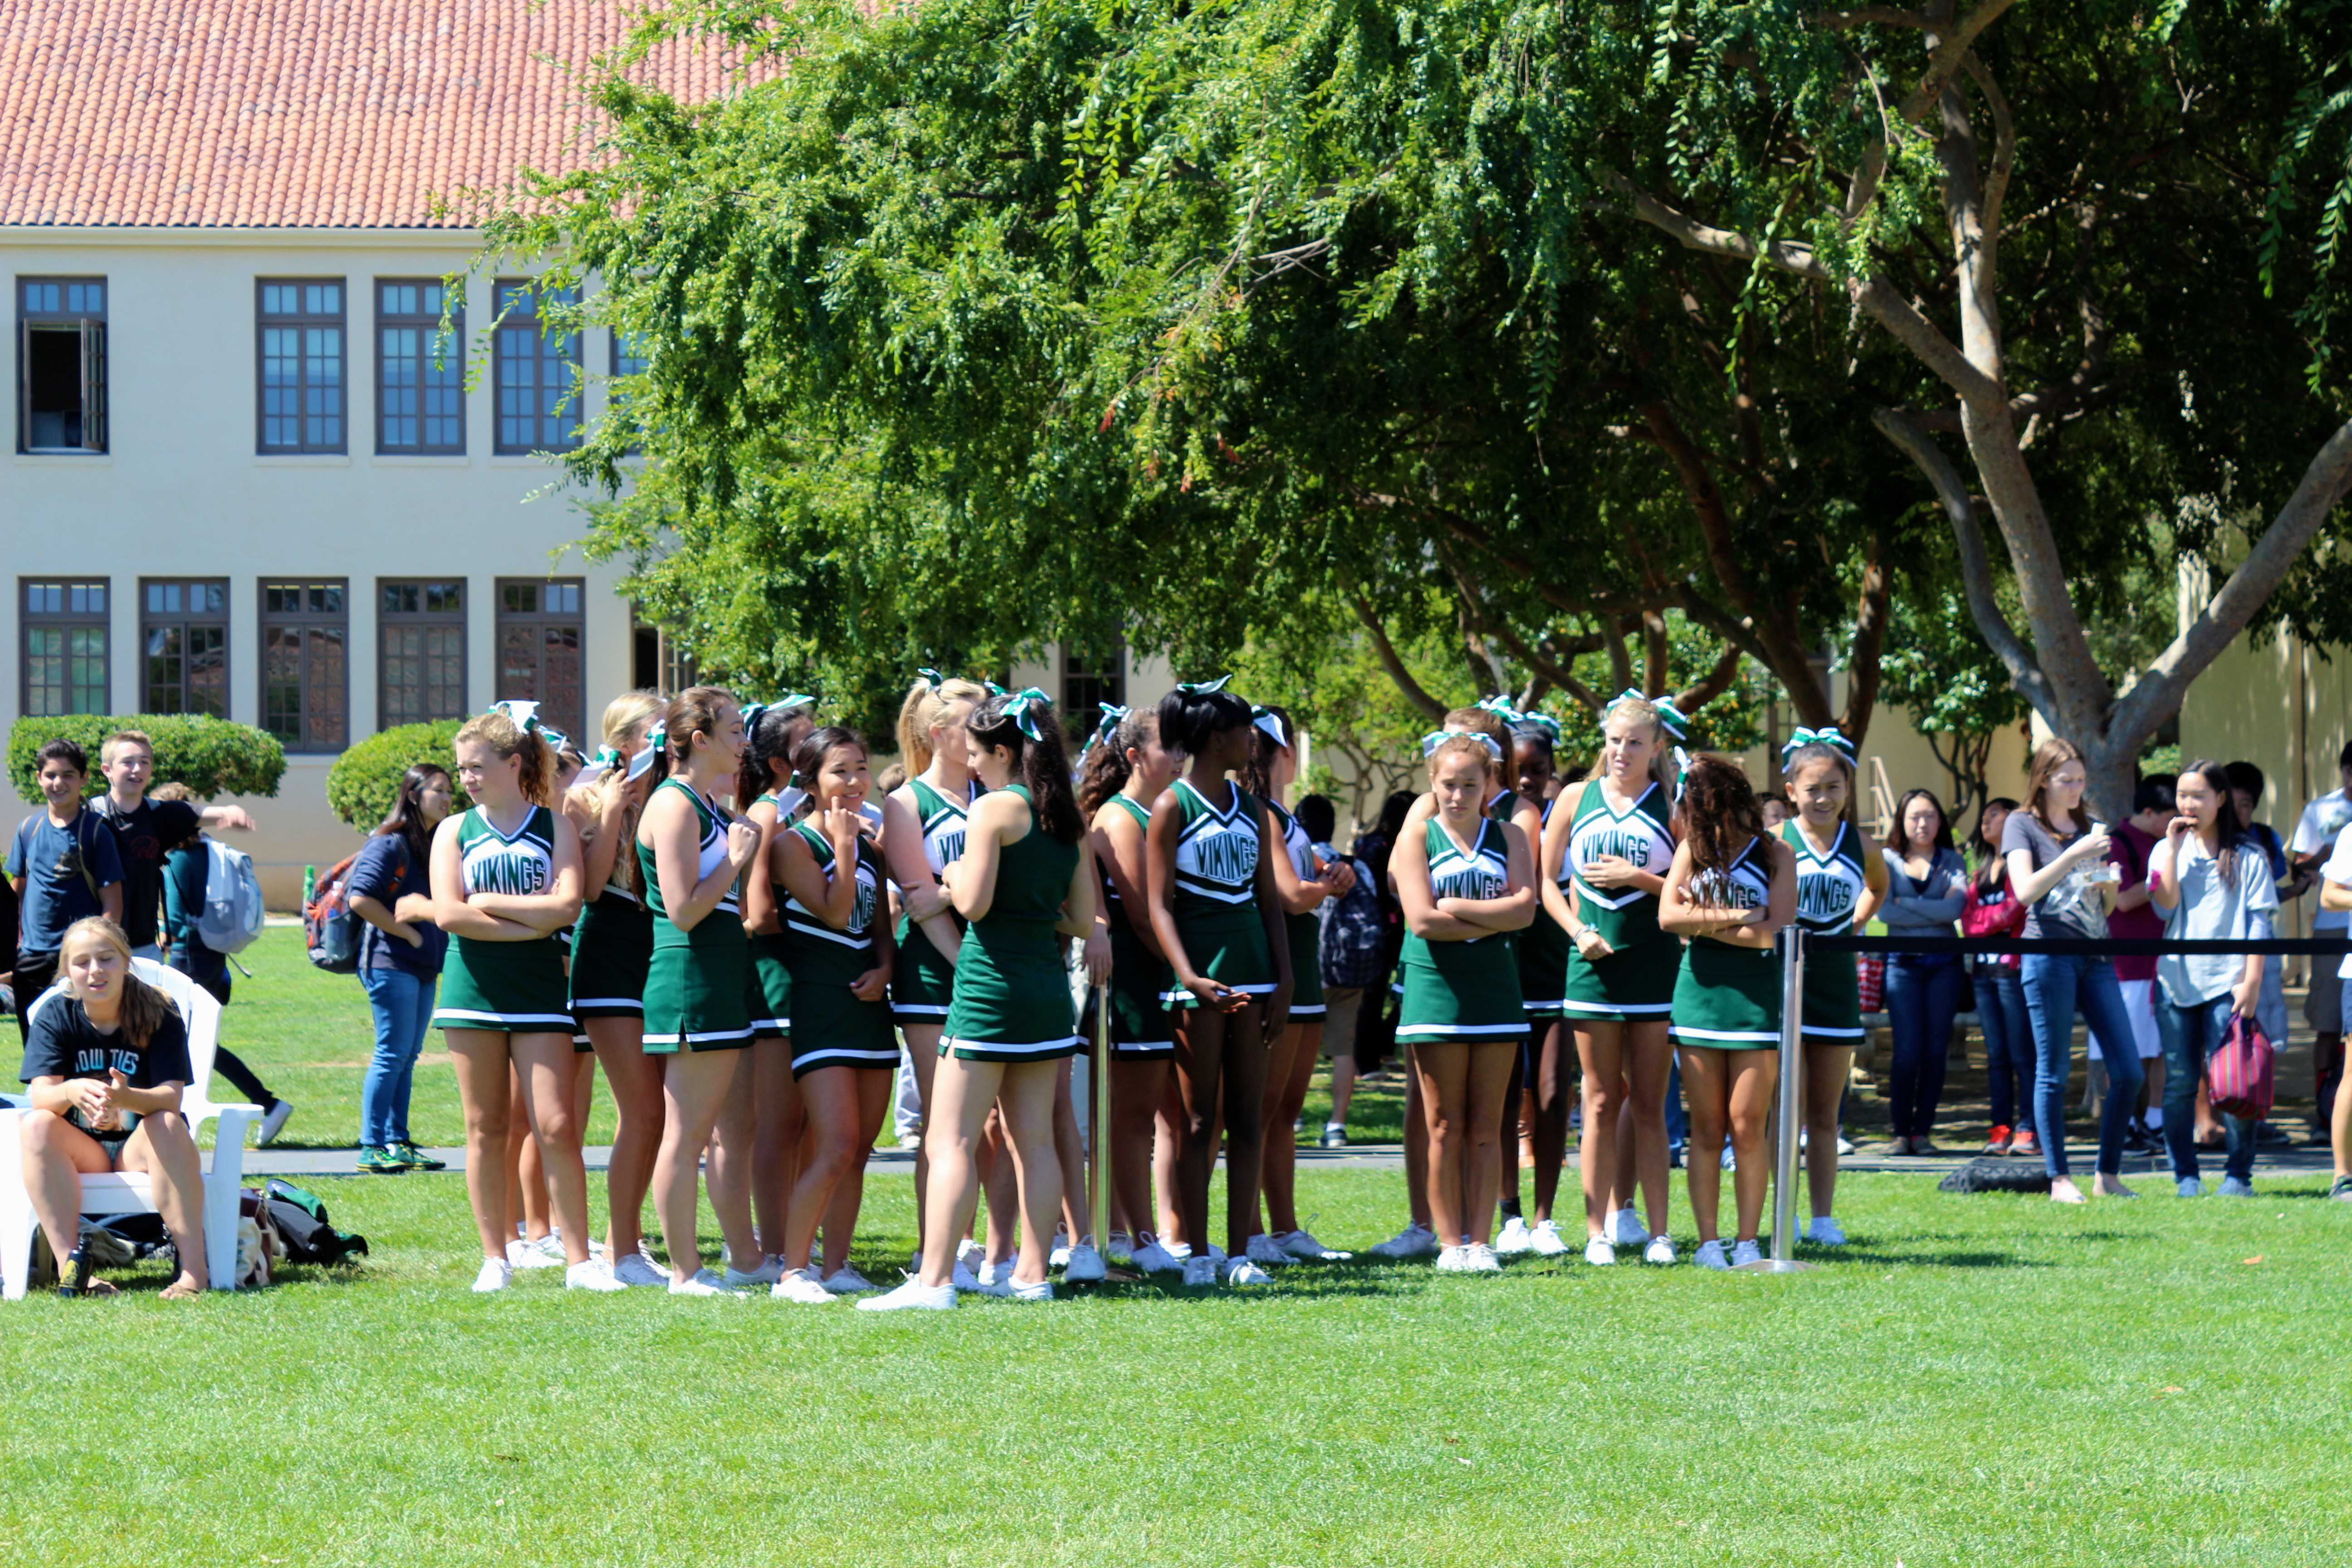 Cheerleaders gather before their performance. Photo by Frankie Comey